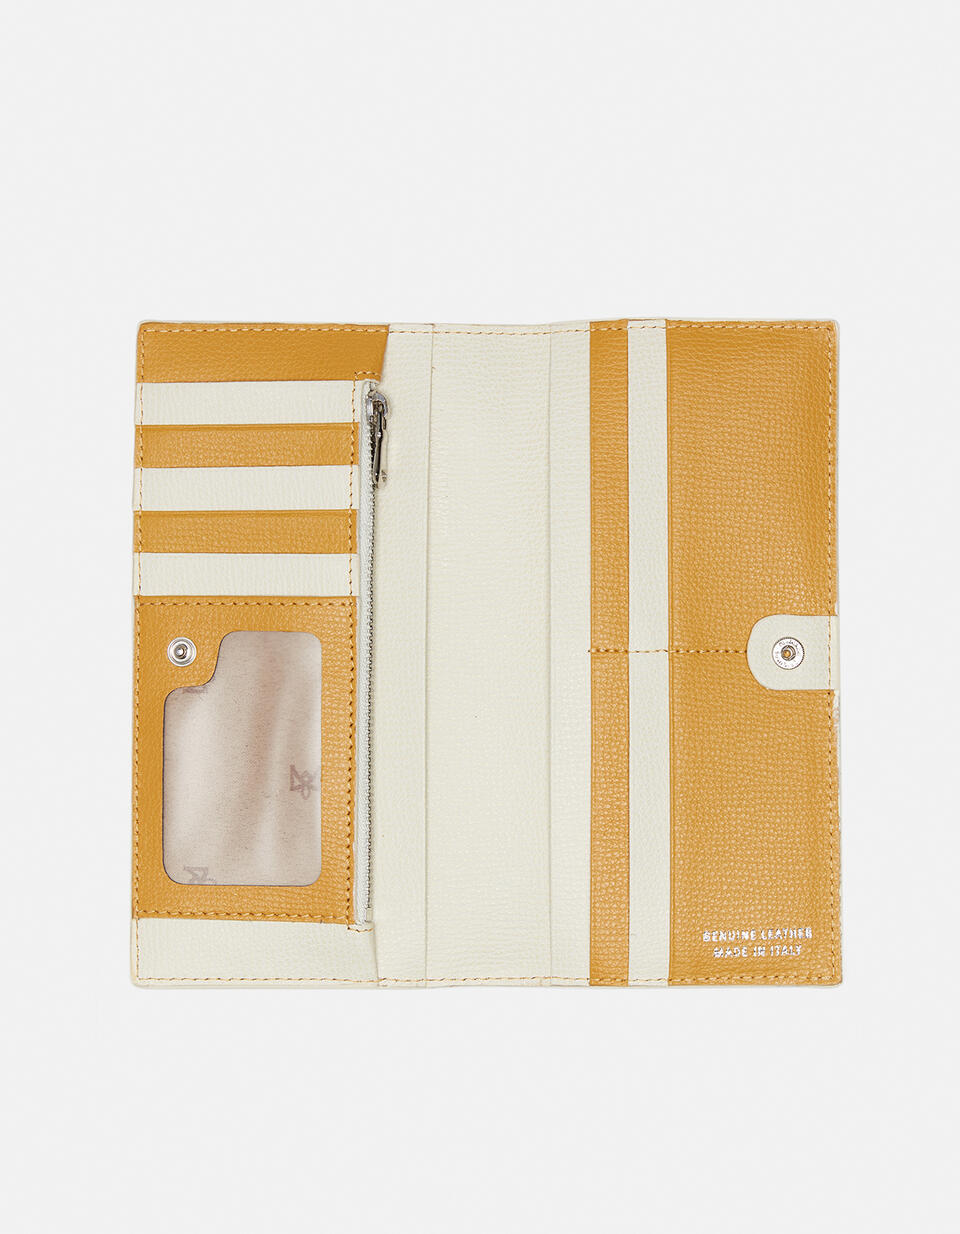 Vertical credit card holder withcoin case and zip Cloud GIALLOAVORIO Cuoieria Fiorentina